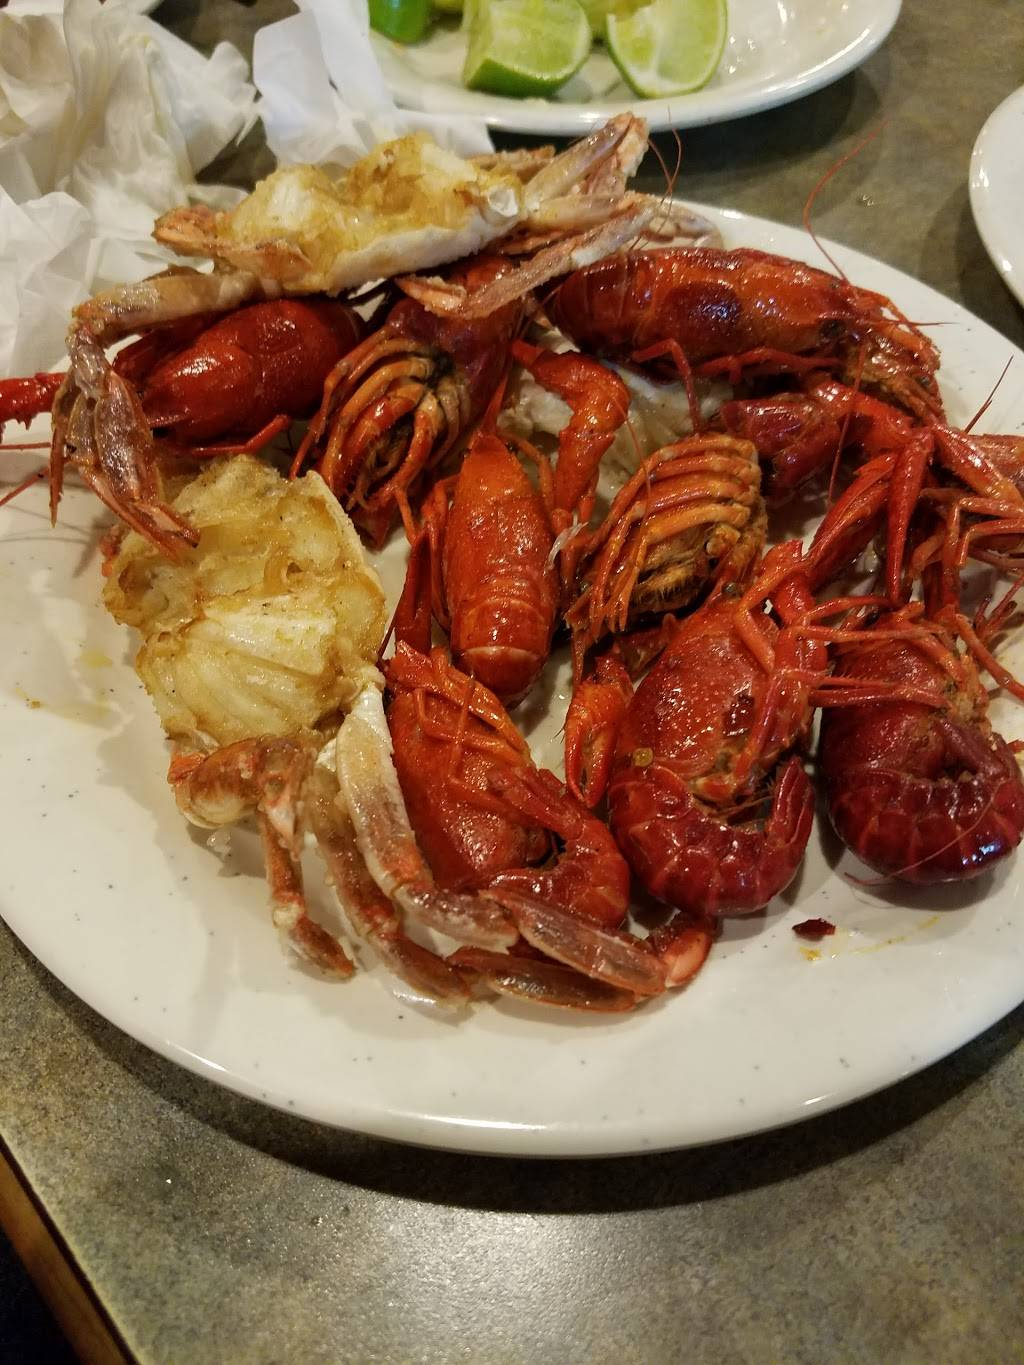 China River Buffet   restaurant   1626 Spencer Hwy, South Houston, TX 77587, USA   7139108899 OR +1 713-910-8899